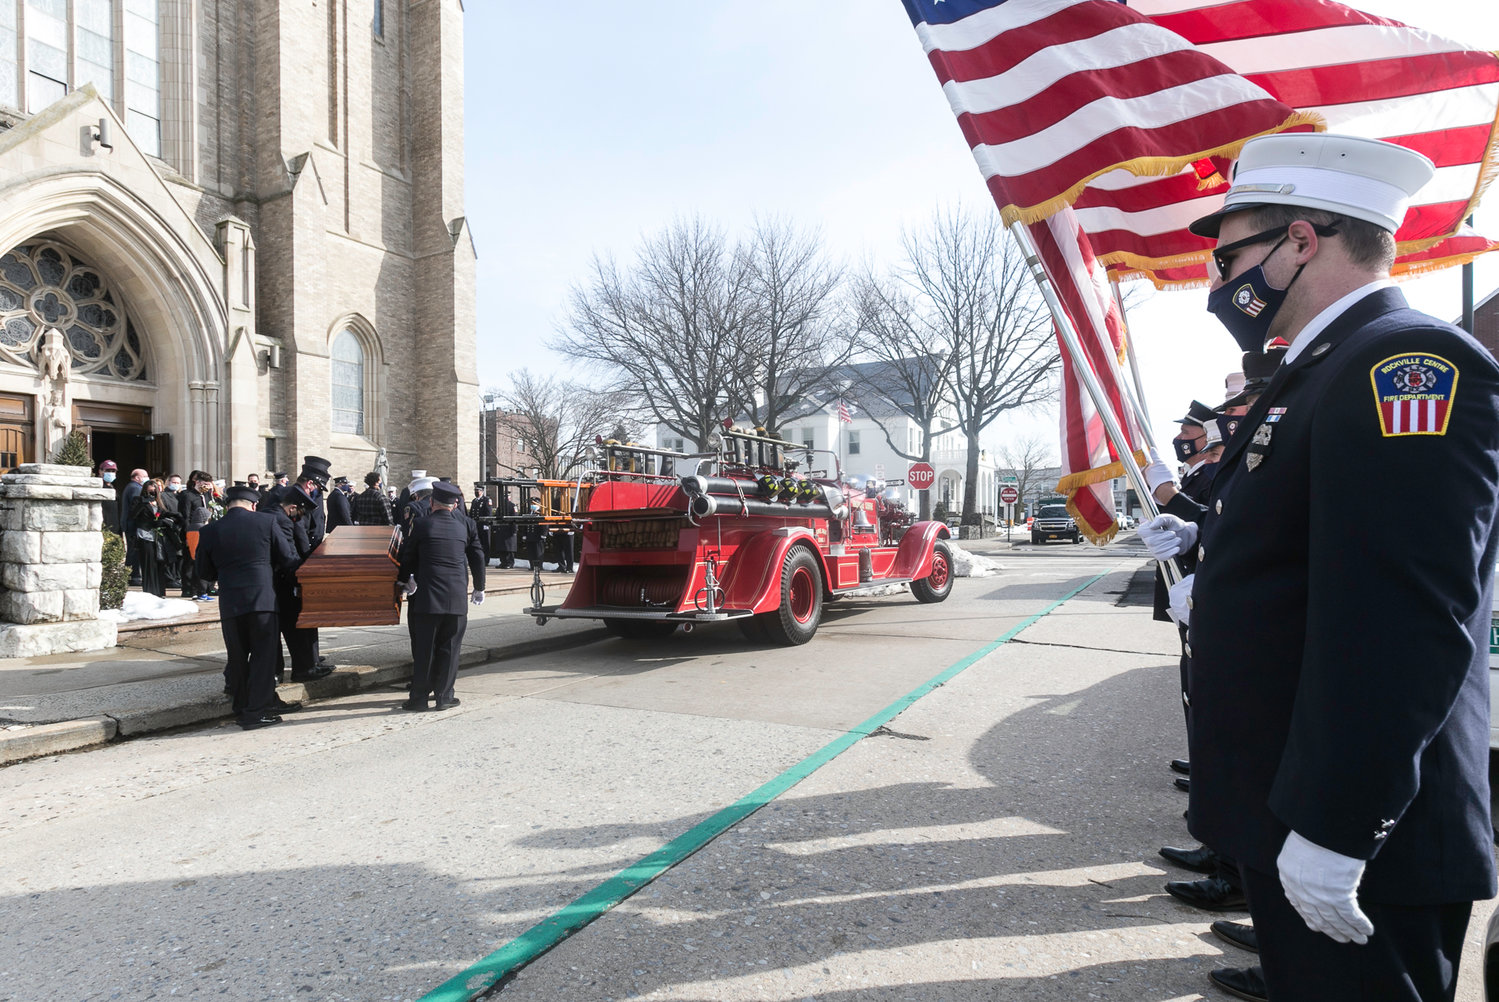 The funeral for Josie Howard was held at St. Agnes Cathedral on Feb. 23.